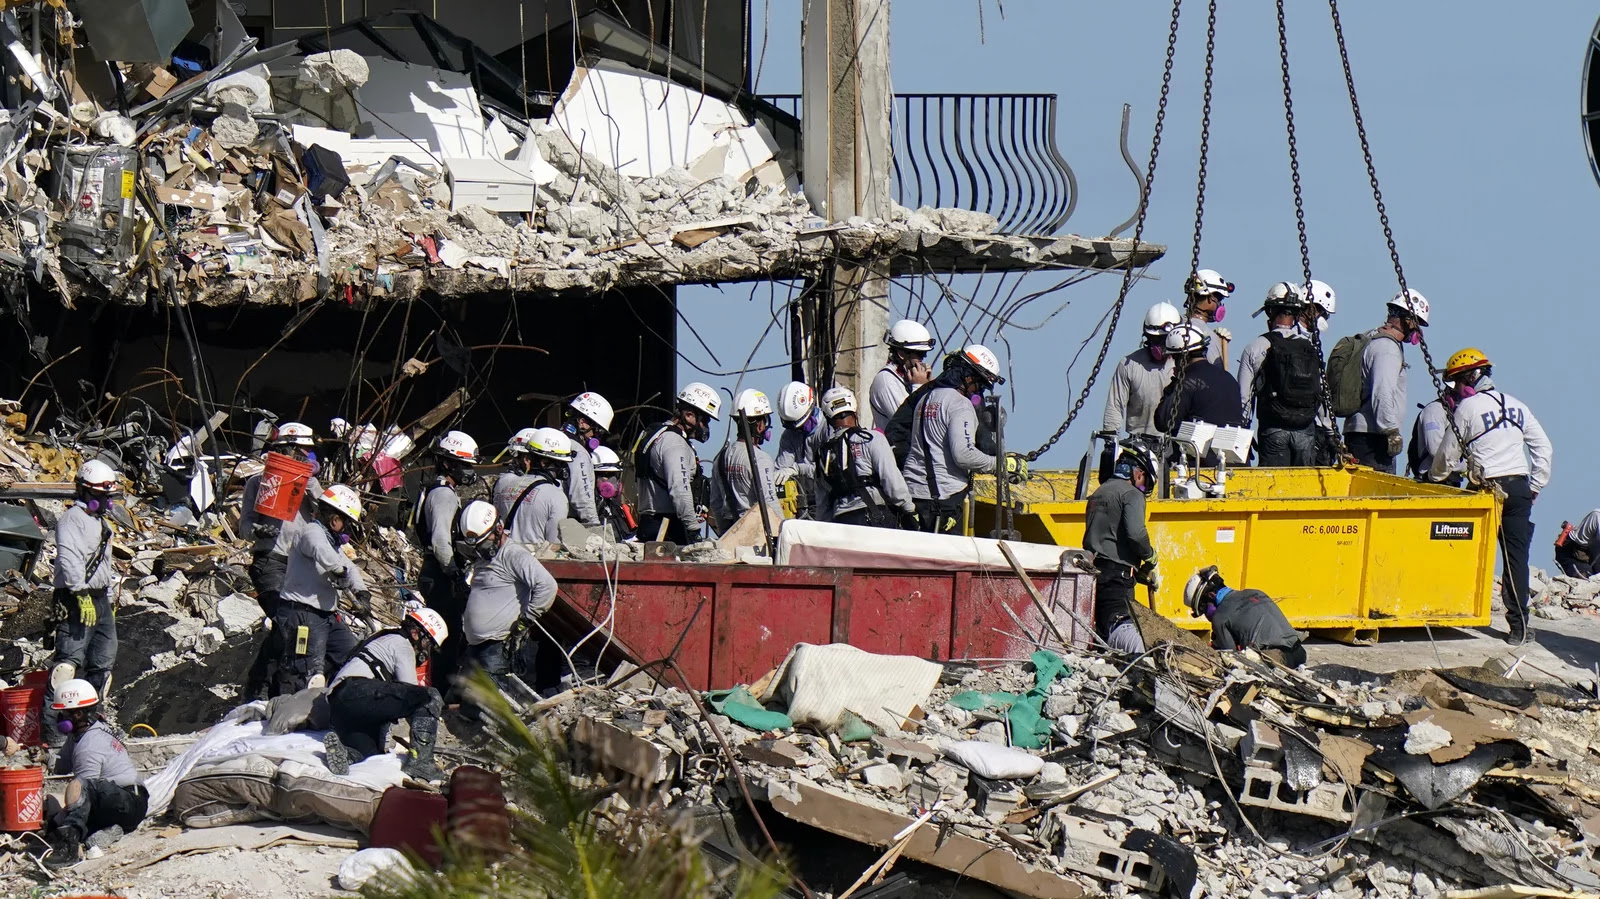 Rescue workers combing through the debris of the condo collapse in Surfside, Florida